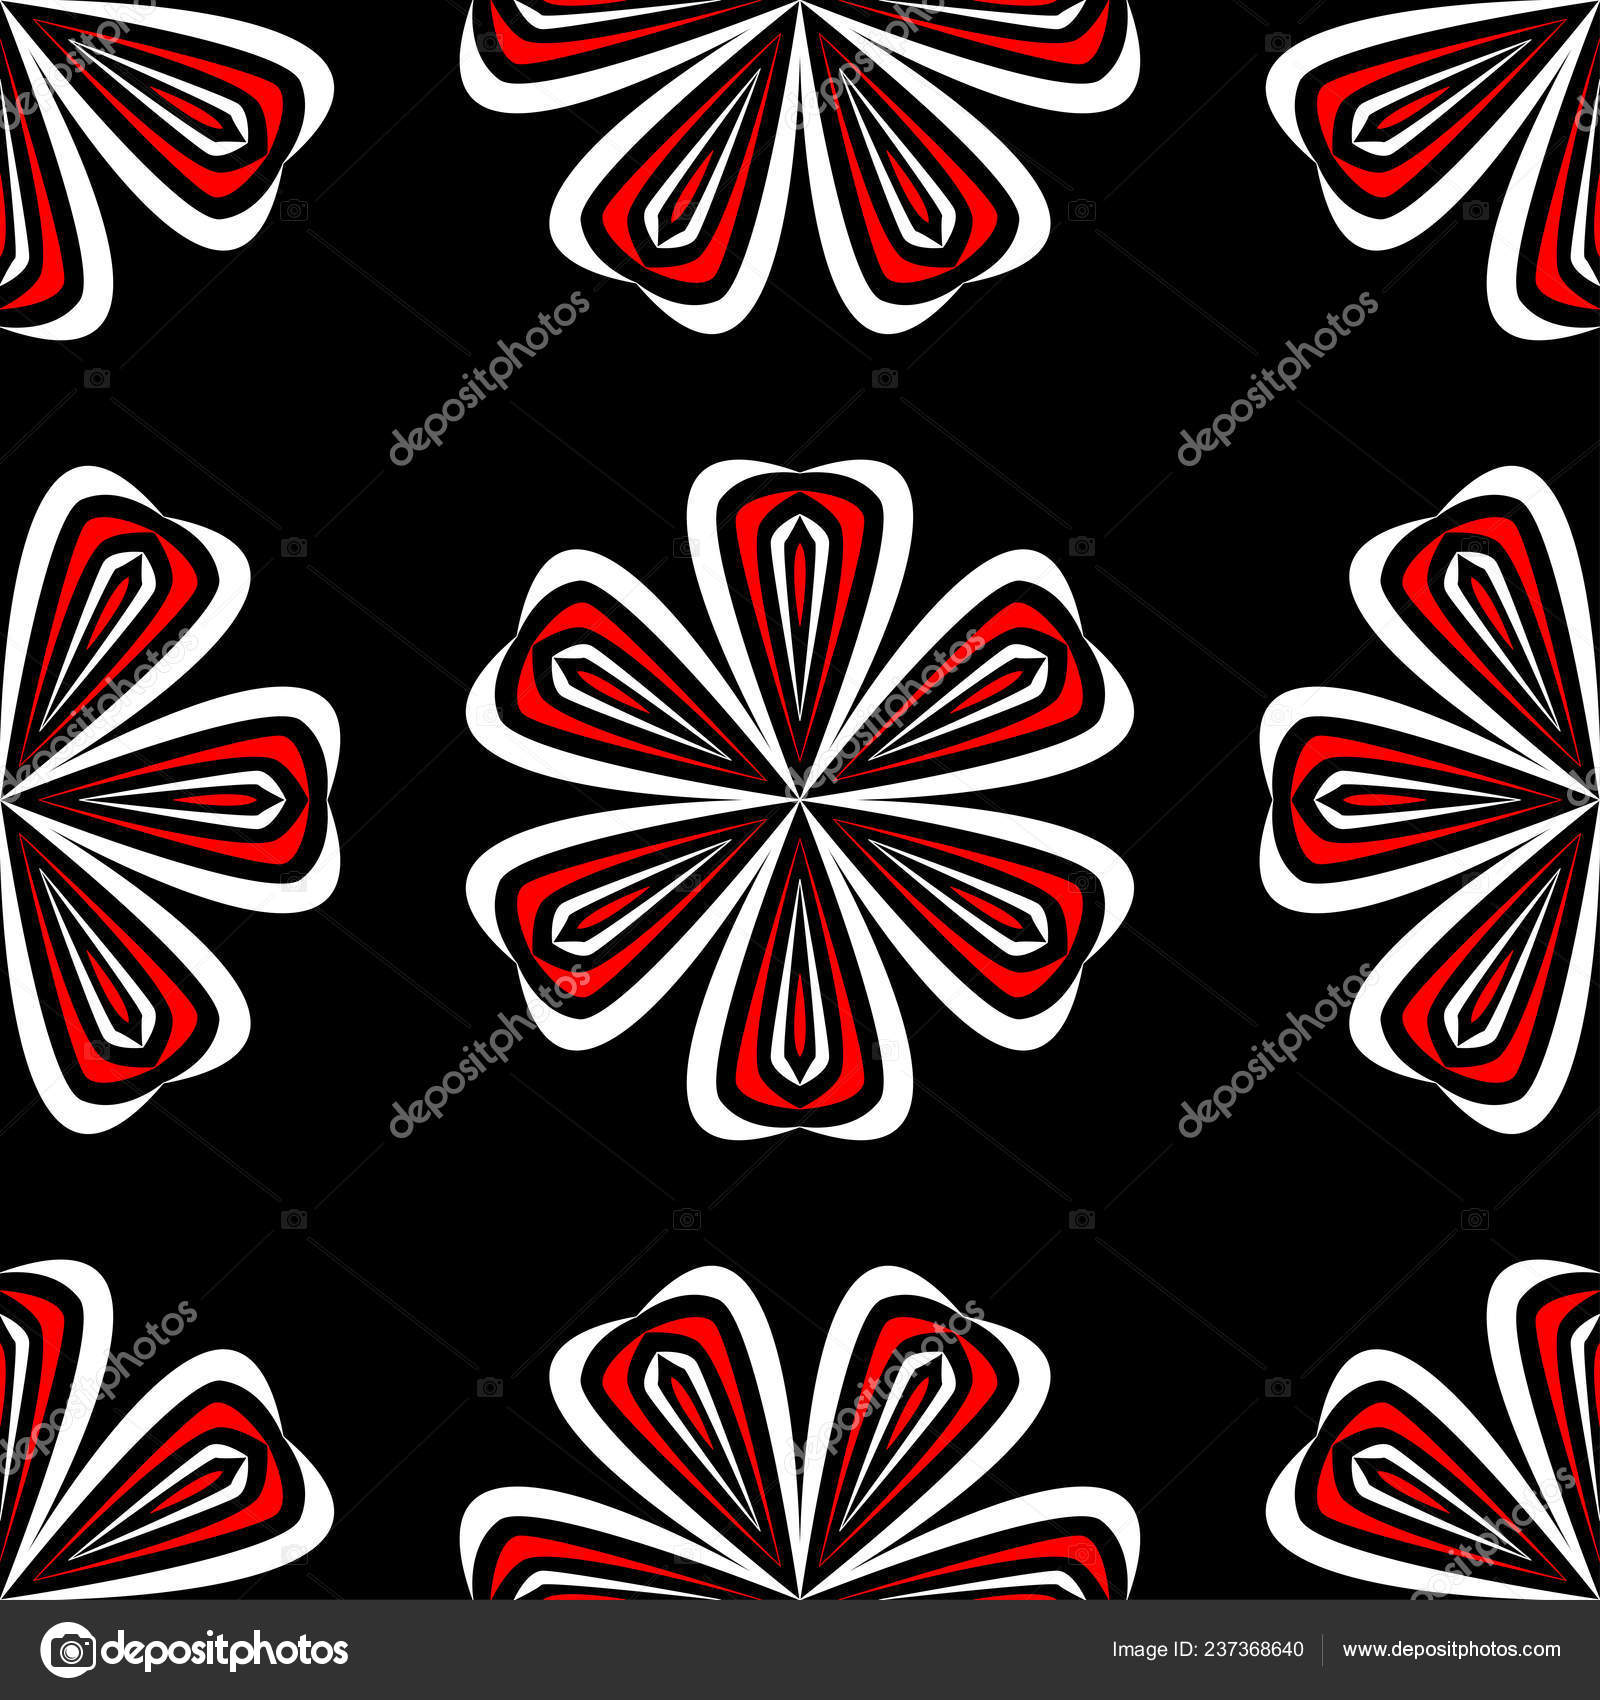 Floral Seamless Pattern Black Red White Background Wallpapers